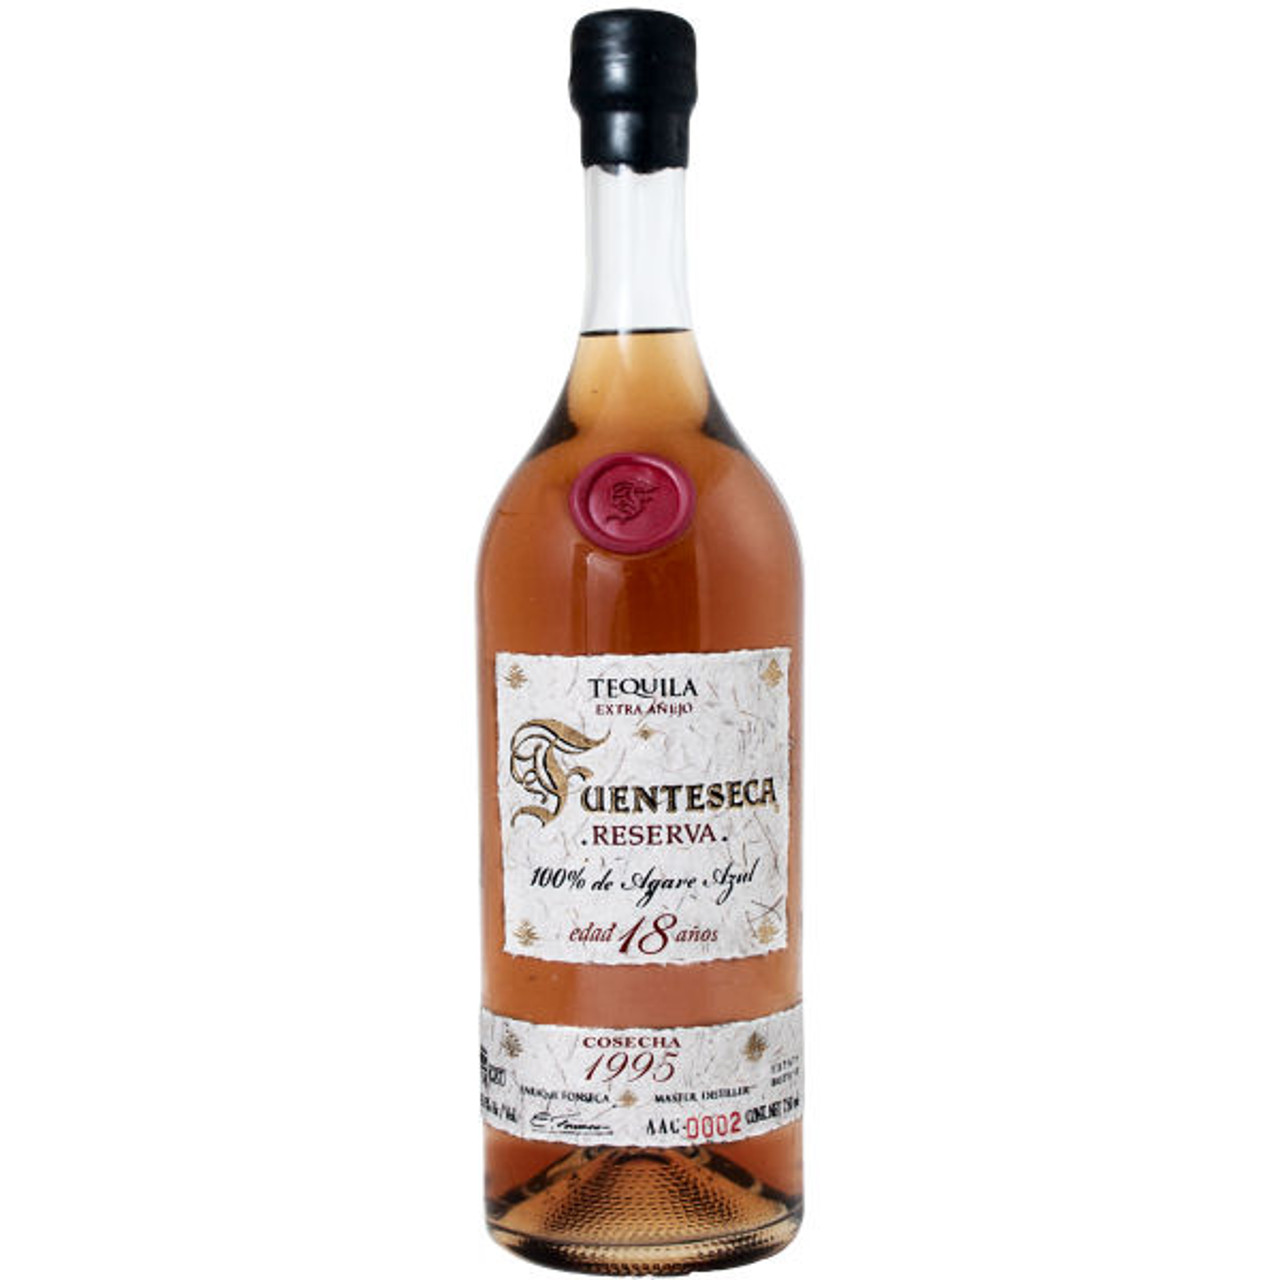 2e84e4f041b Fuenteseca Reserva Extra Anejo 1995 18 Year Old Tequila 750ml